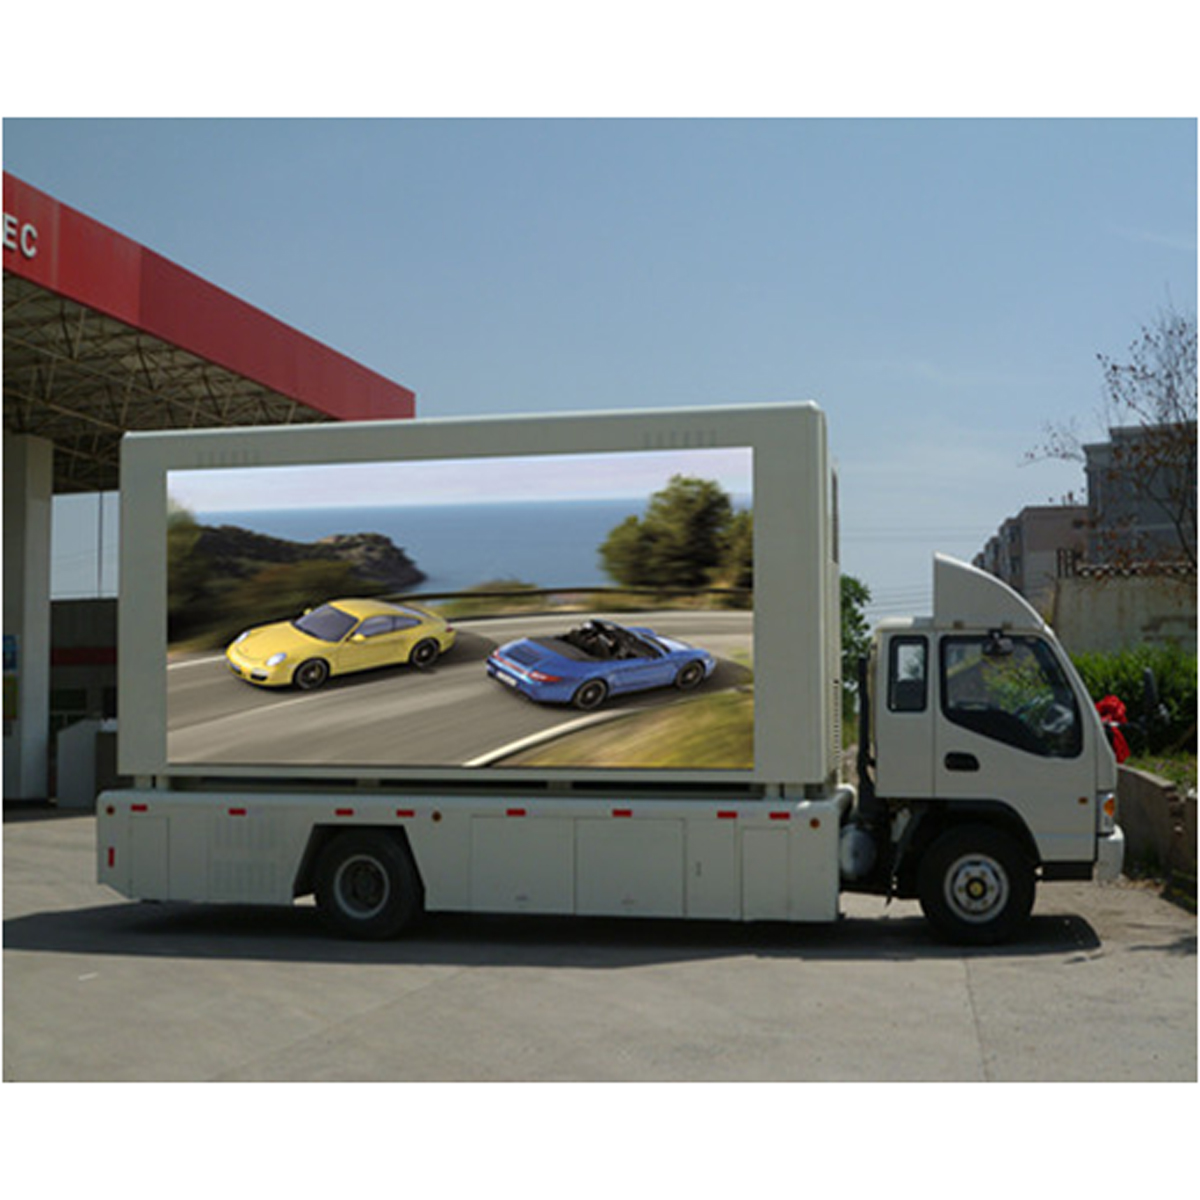 Outdoor p6 p8 p10 Mobile Truck Mounted LED Display Screen Video Advertising Trailer